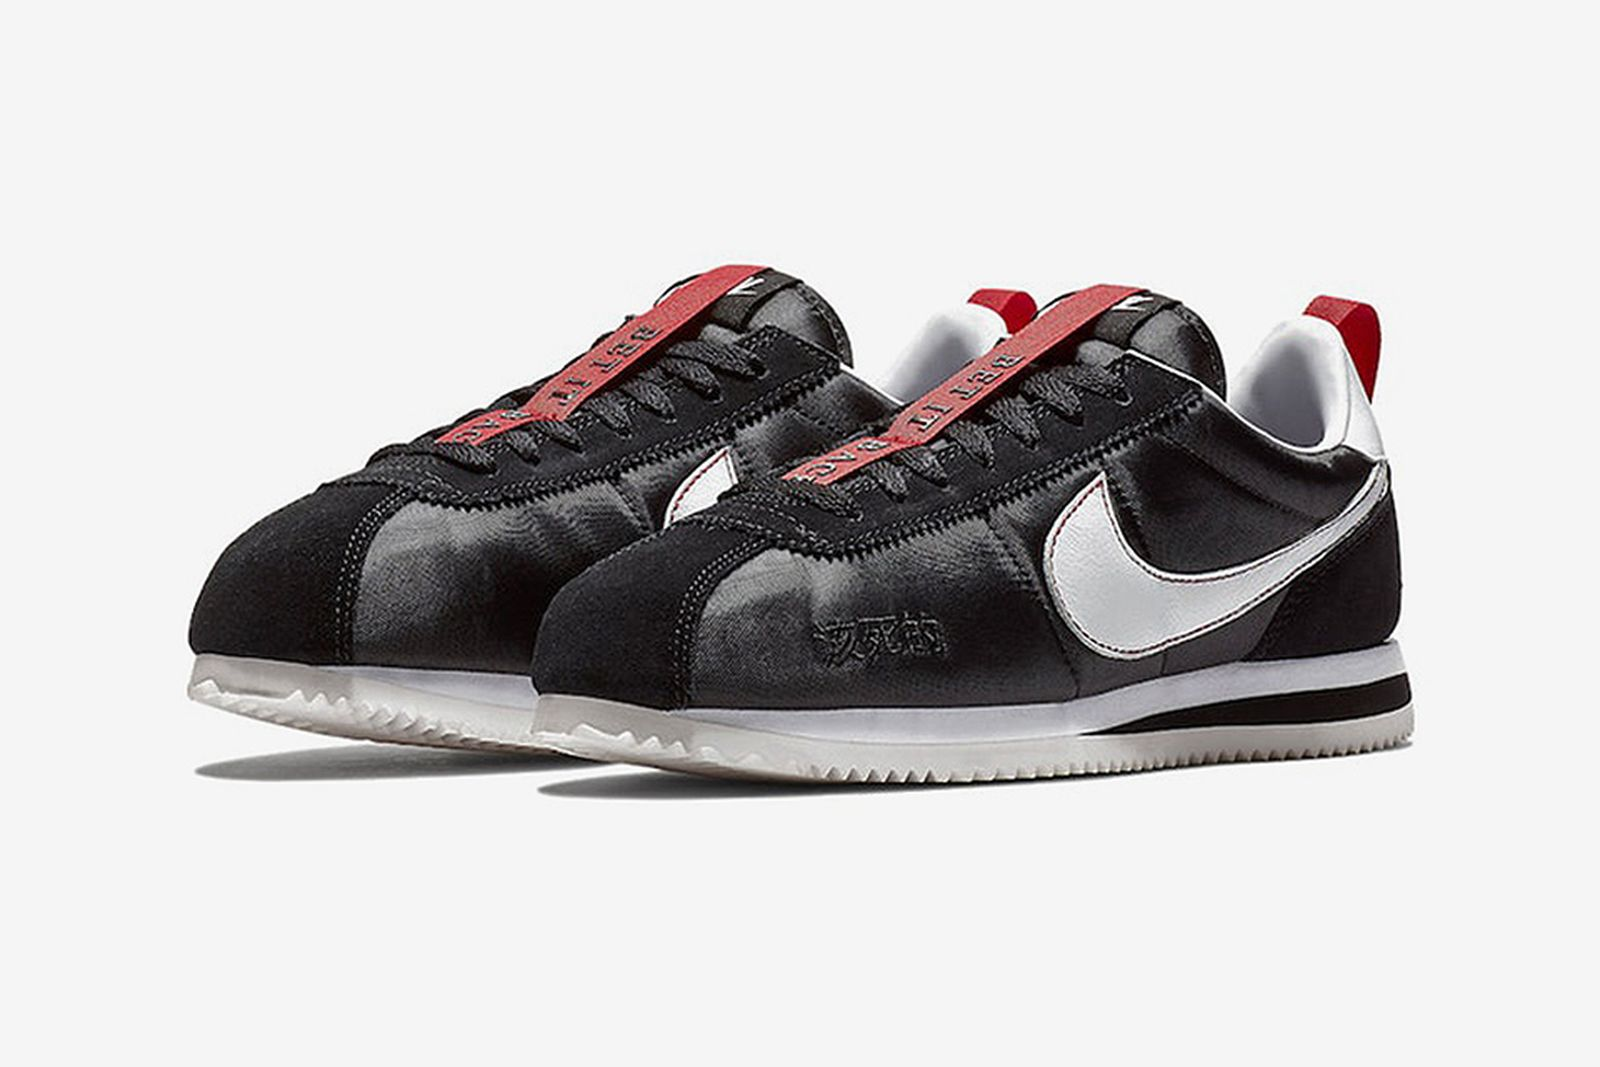 kendrick lamar nike cortez black release date price official images TDE